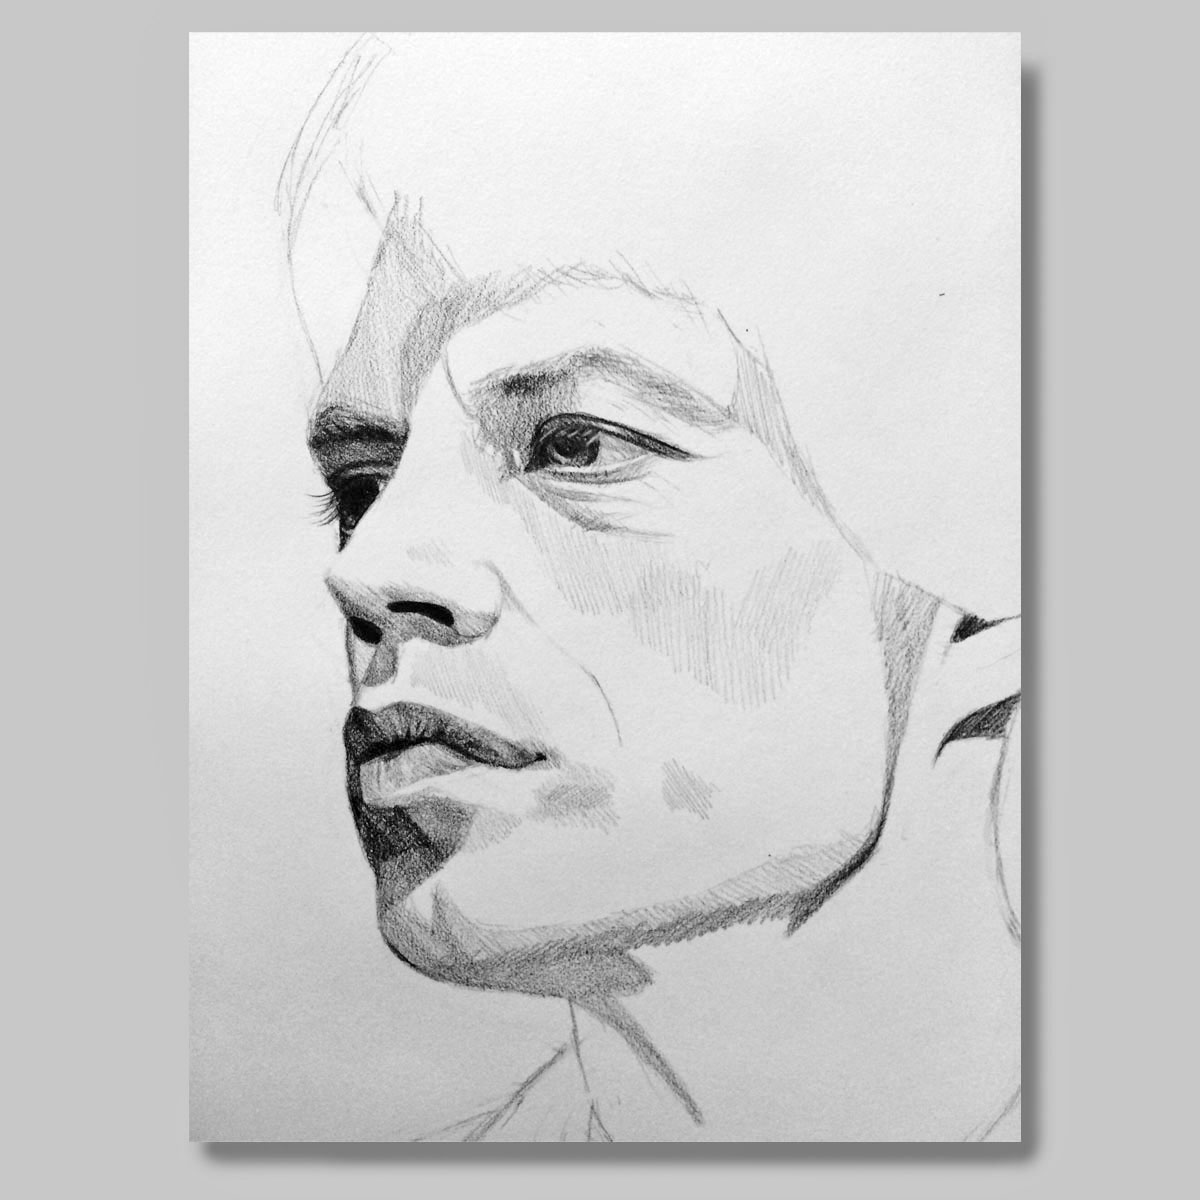 print-potlood-tekening-mick-jagger-mae-smith-jessy-langen